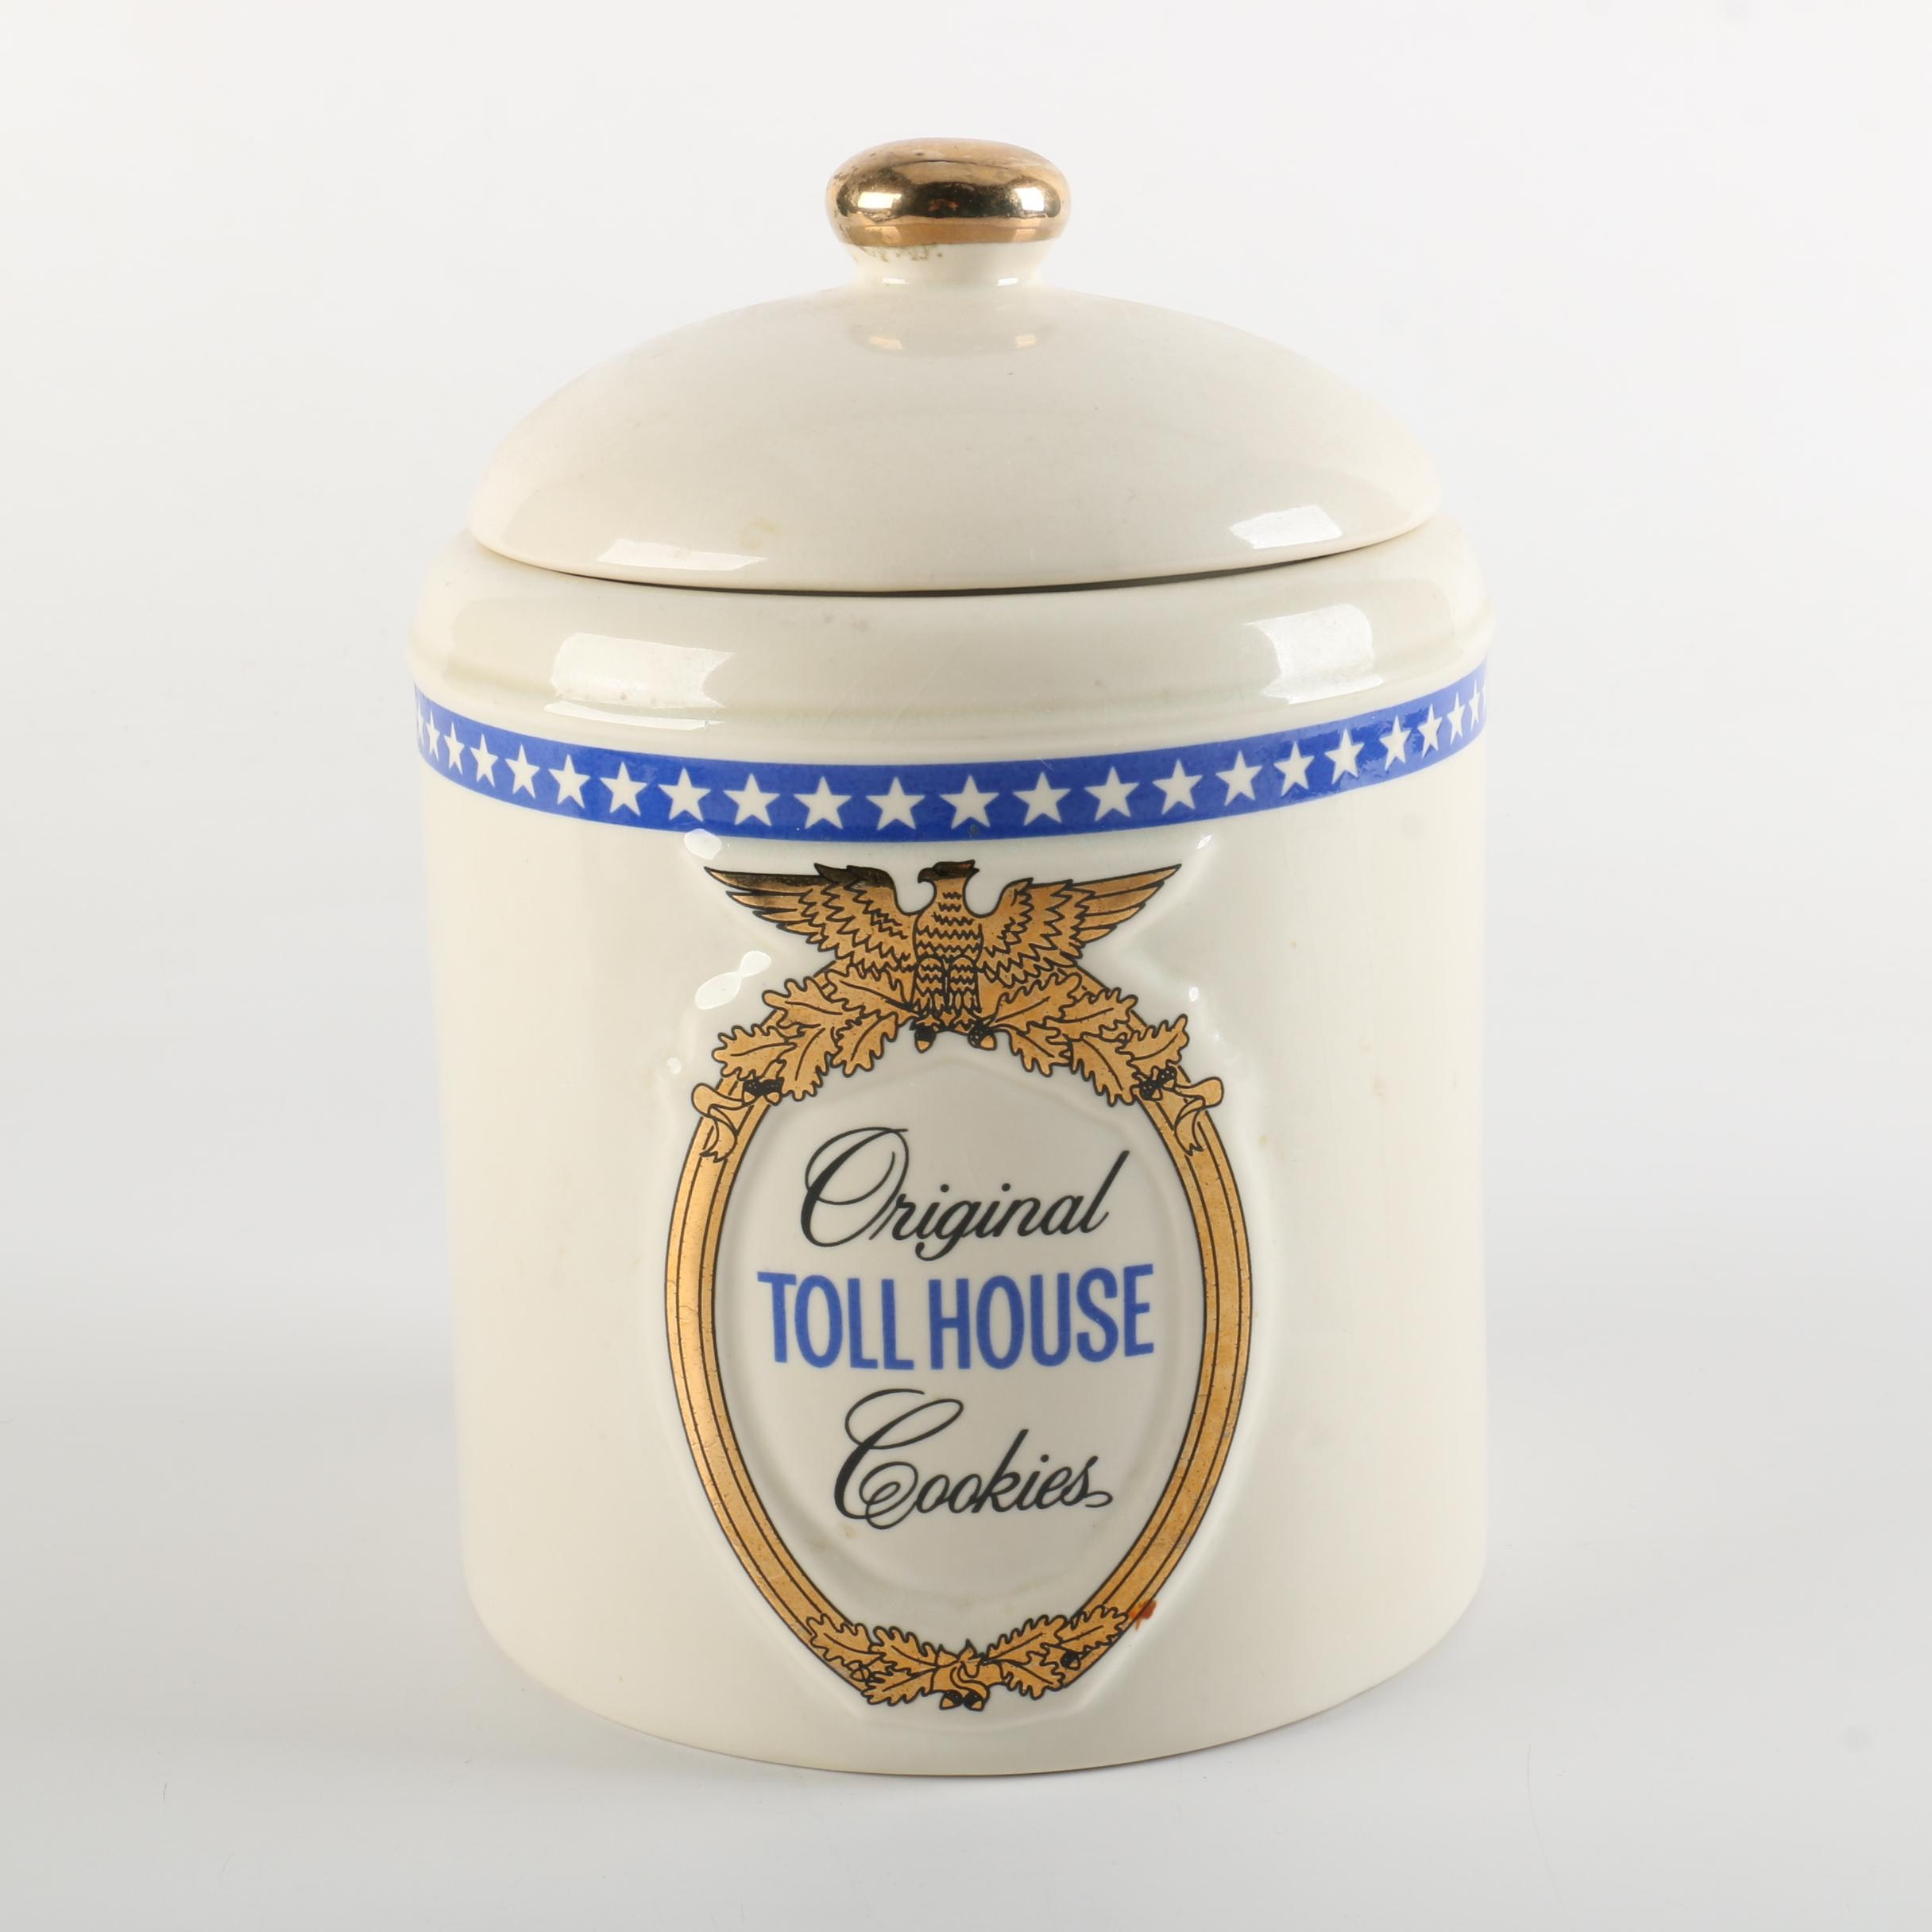 Vintage Toll House Cookie Jar